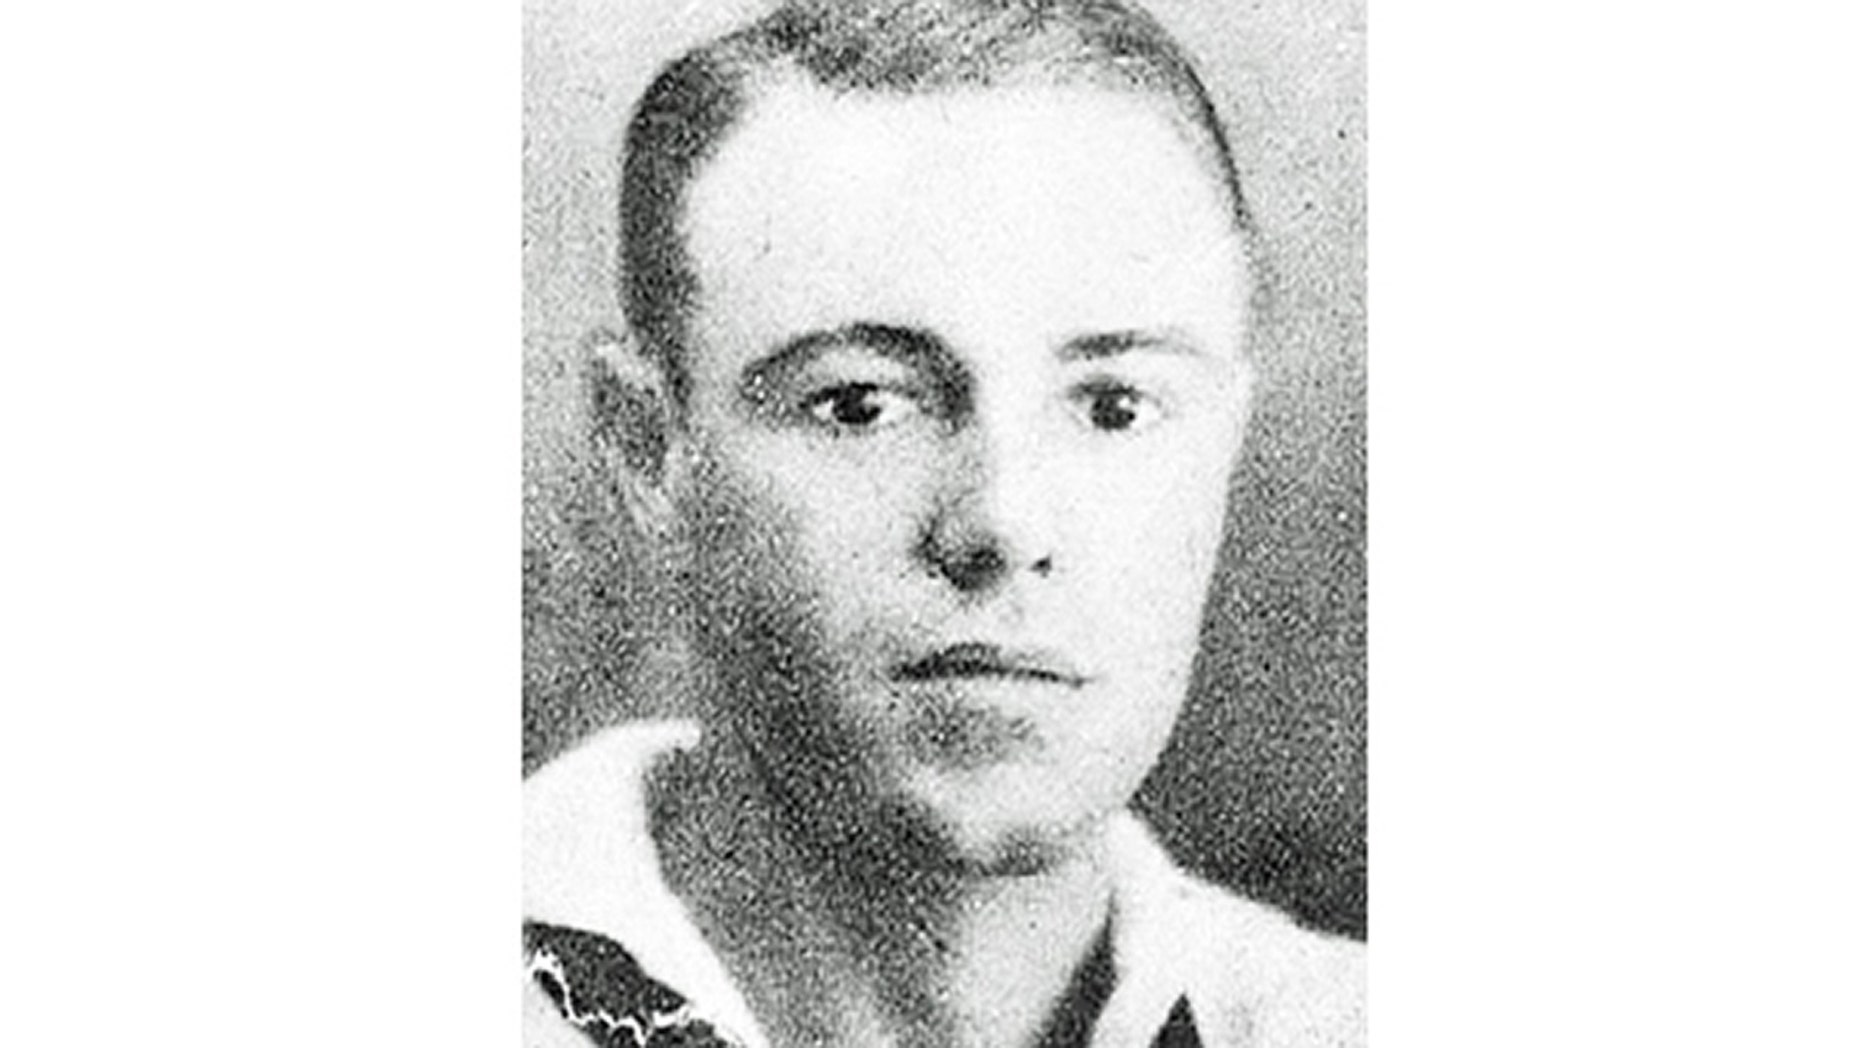 Navy Fire Controlman 1st Class Edward J. Shelden, 29,of Indianapolis, was serving aboard the USS Oklahoma when it was struck by enemy fire multiple times on Dec. 7, 1941. (Defense POW/MIA Accounting Agency)